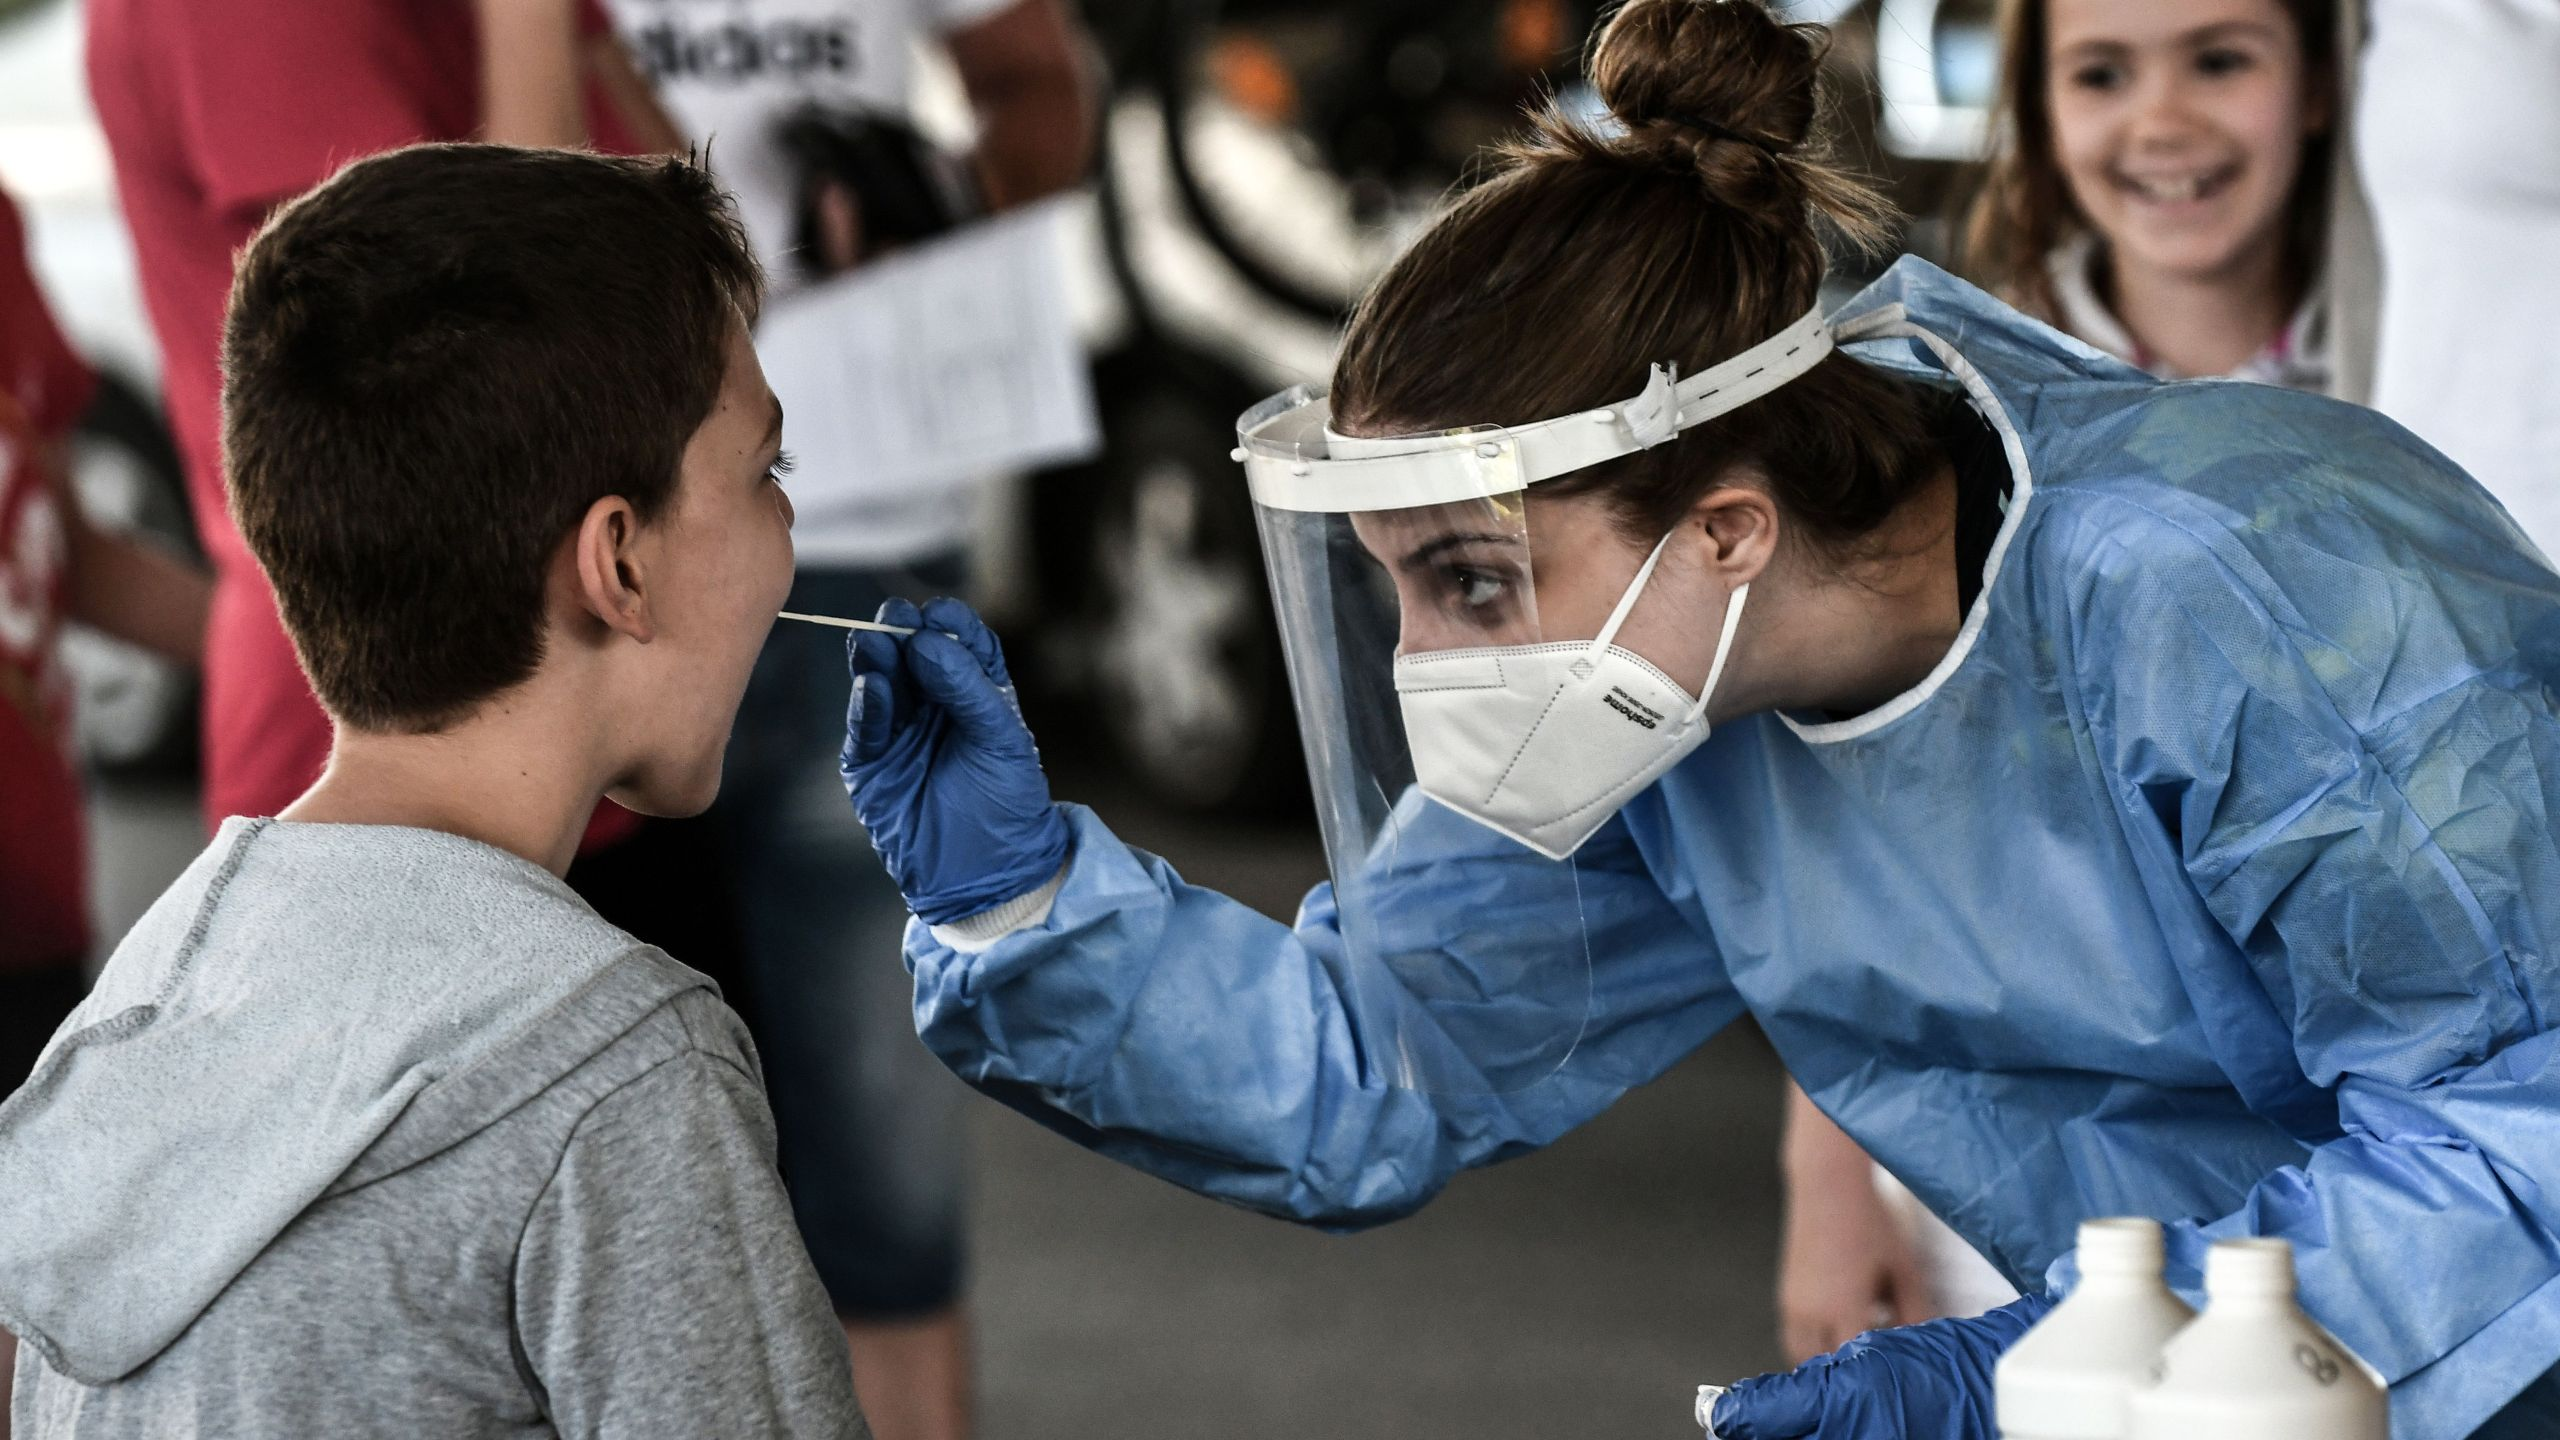 A public health worker collects a swab sample from a boy to test for the COVID-19 at the Greek-Bulgarian border crossing in Promachonas on July 10, 2020. (SAKIS MITROLIDIS/AFP via Getty Images)